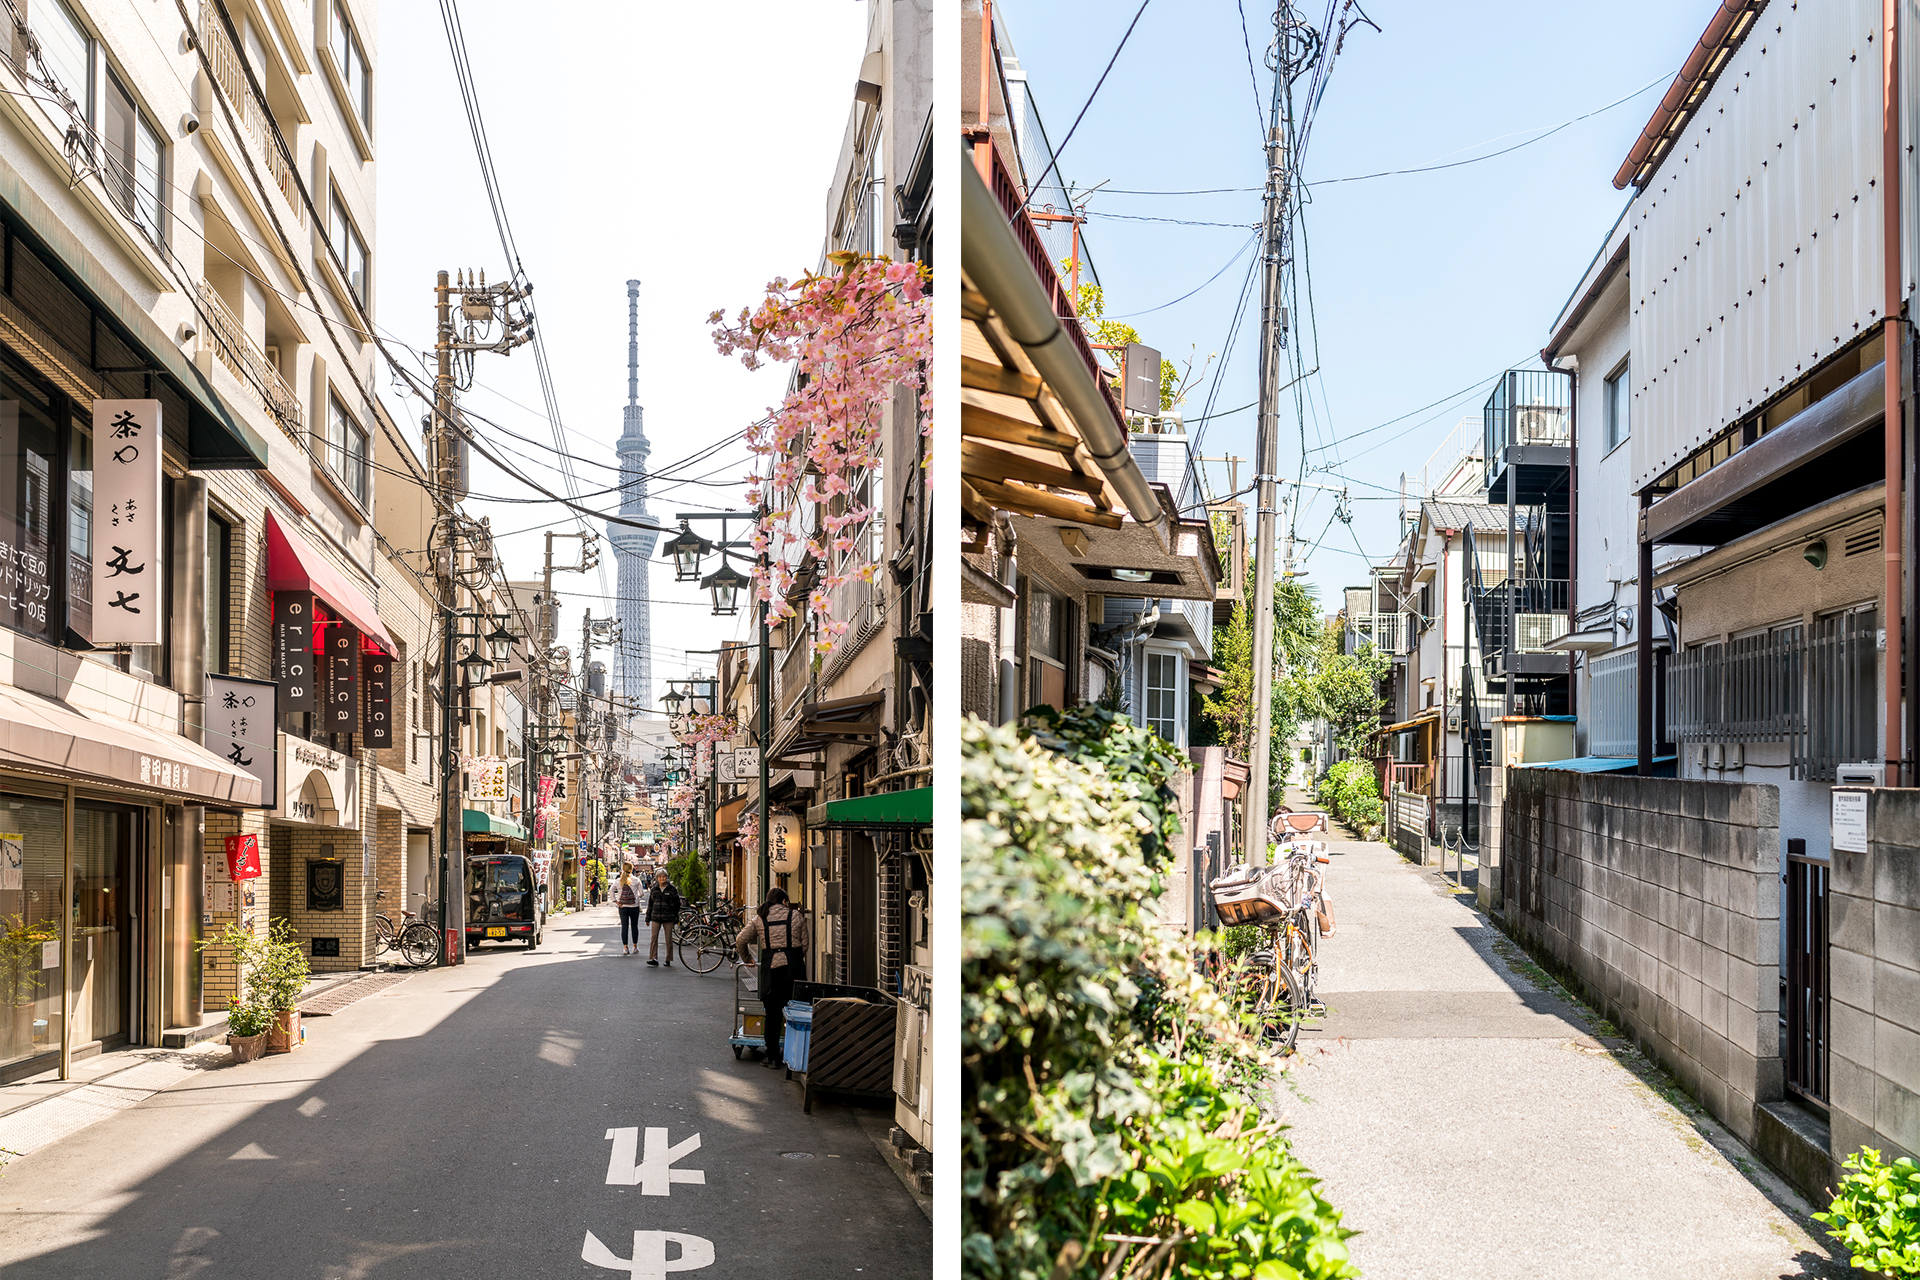 Tokio off the beaten path